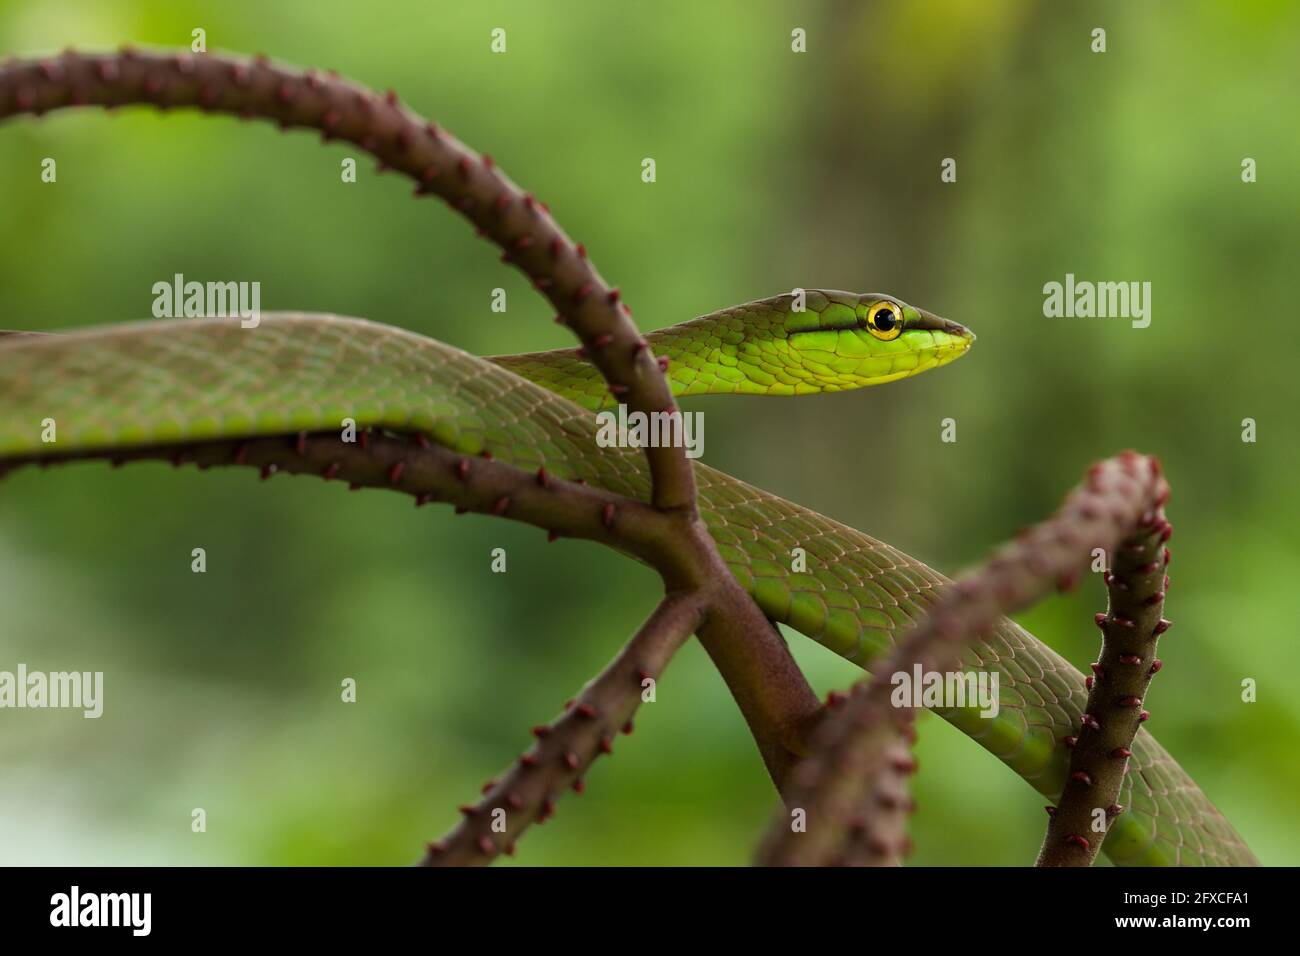 The Short-nosed Vine Snake - Oxybelis brevirostris, is an arboreal snake that preys primarily on tree frogs and lizards. Stock Photo